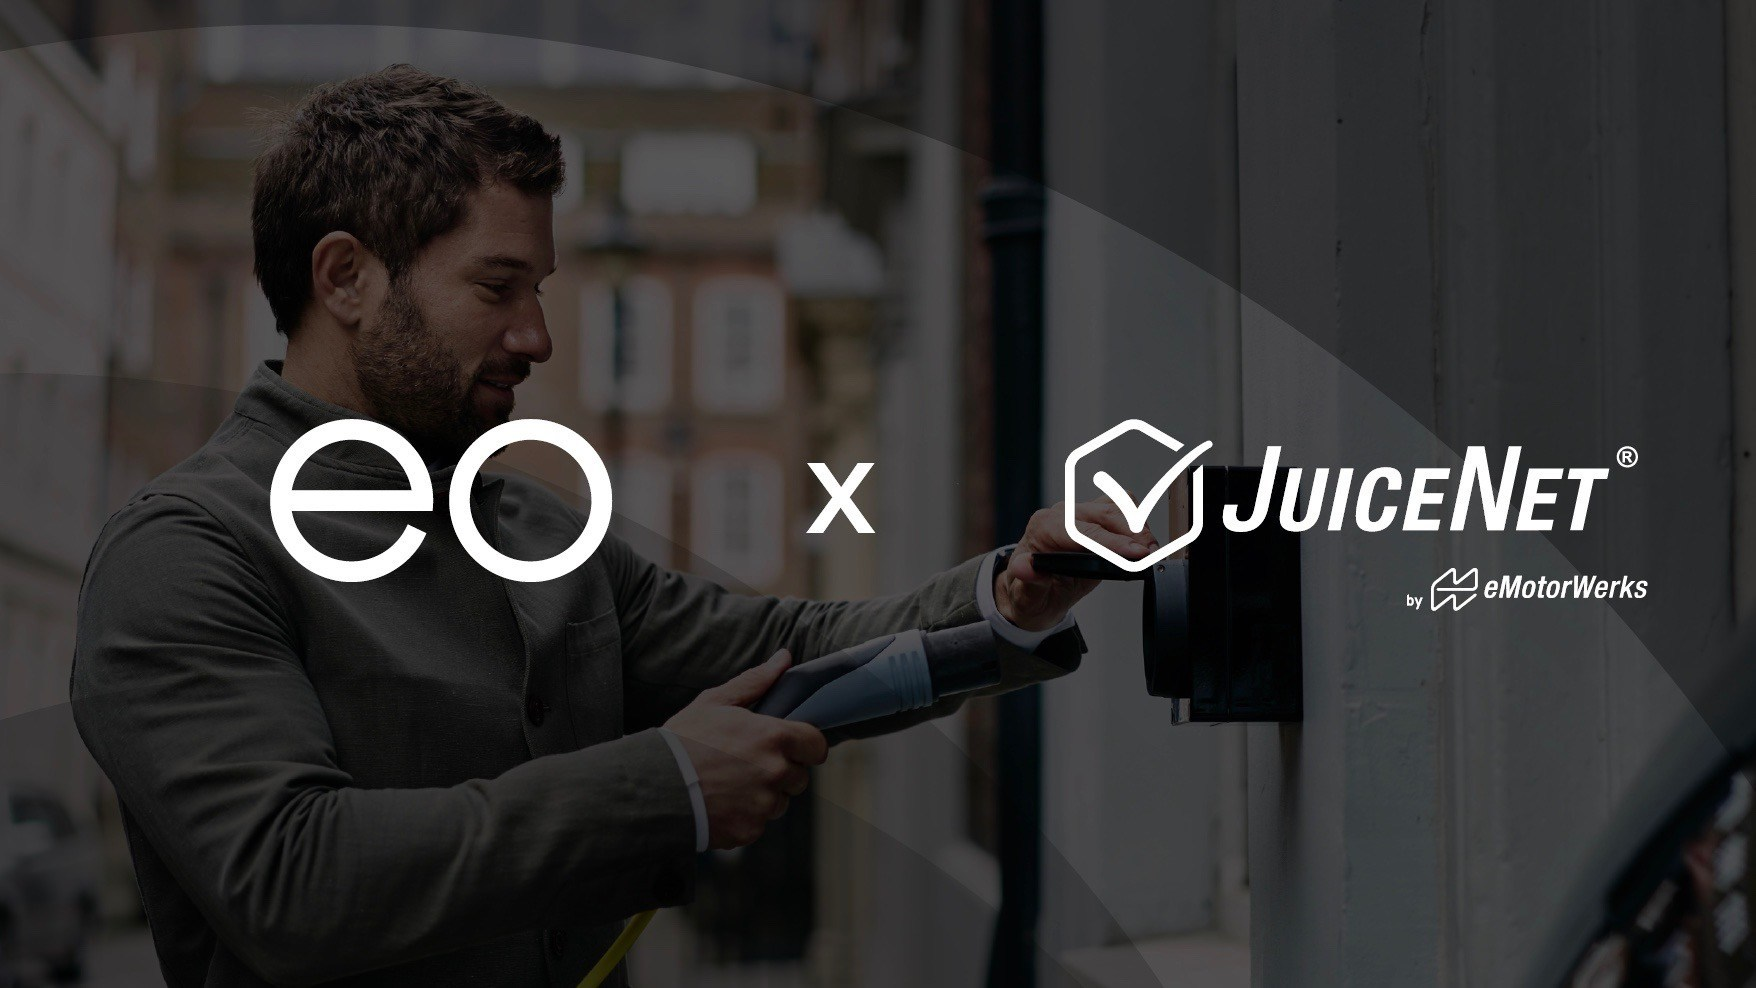 eMotorWerks' JuiceNet platform to be integrated into the new EO Mini Pro, delivering smart scheduling, charging with power from photovoltaic systems and grid services, aimed at lowering EV operating costs